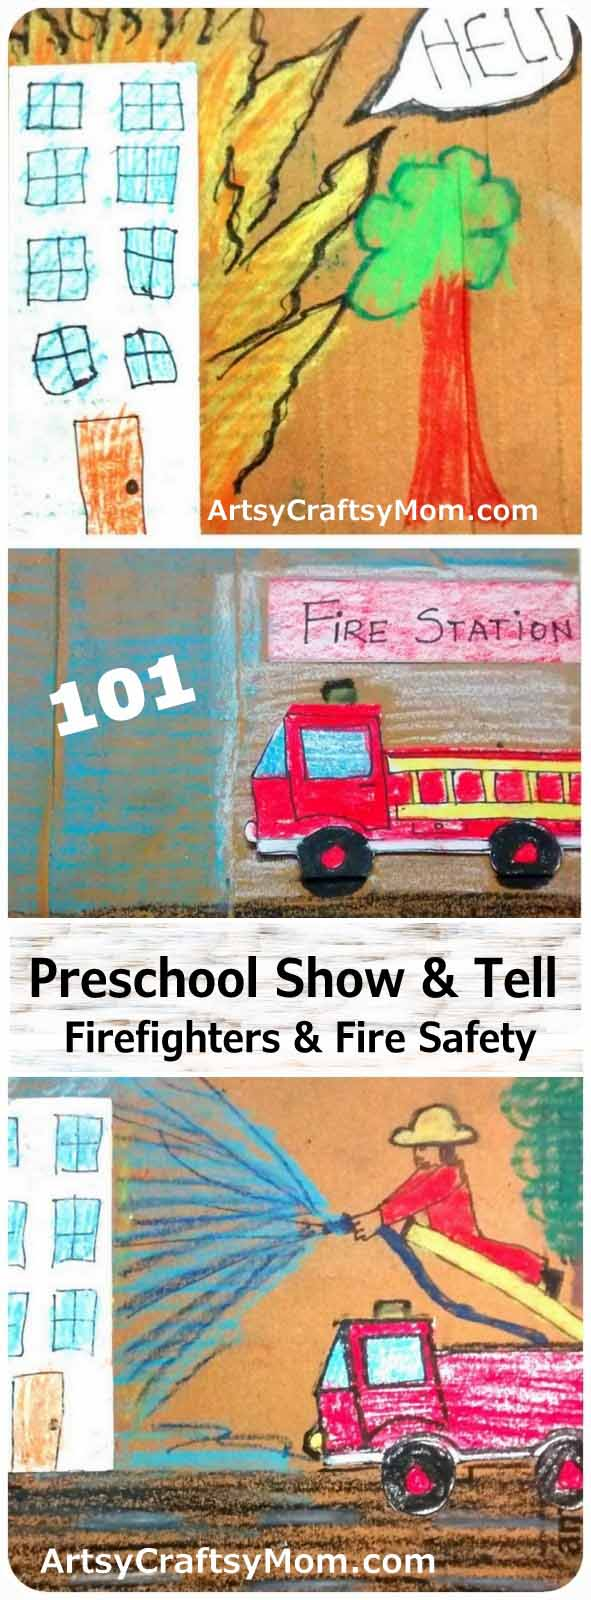 Make a simple chart for a Preschool Show & Tell about Firefighters & Fire Safety. Perfect for Fire Services Day, Fire Safety Week & Community helper study.